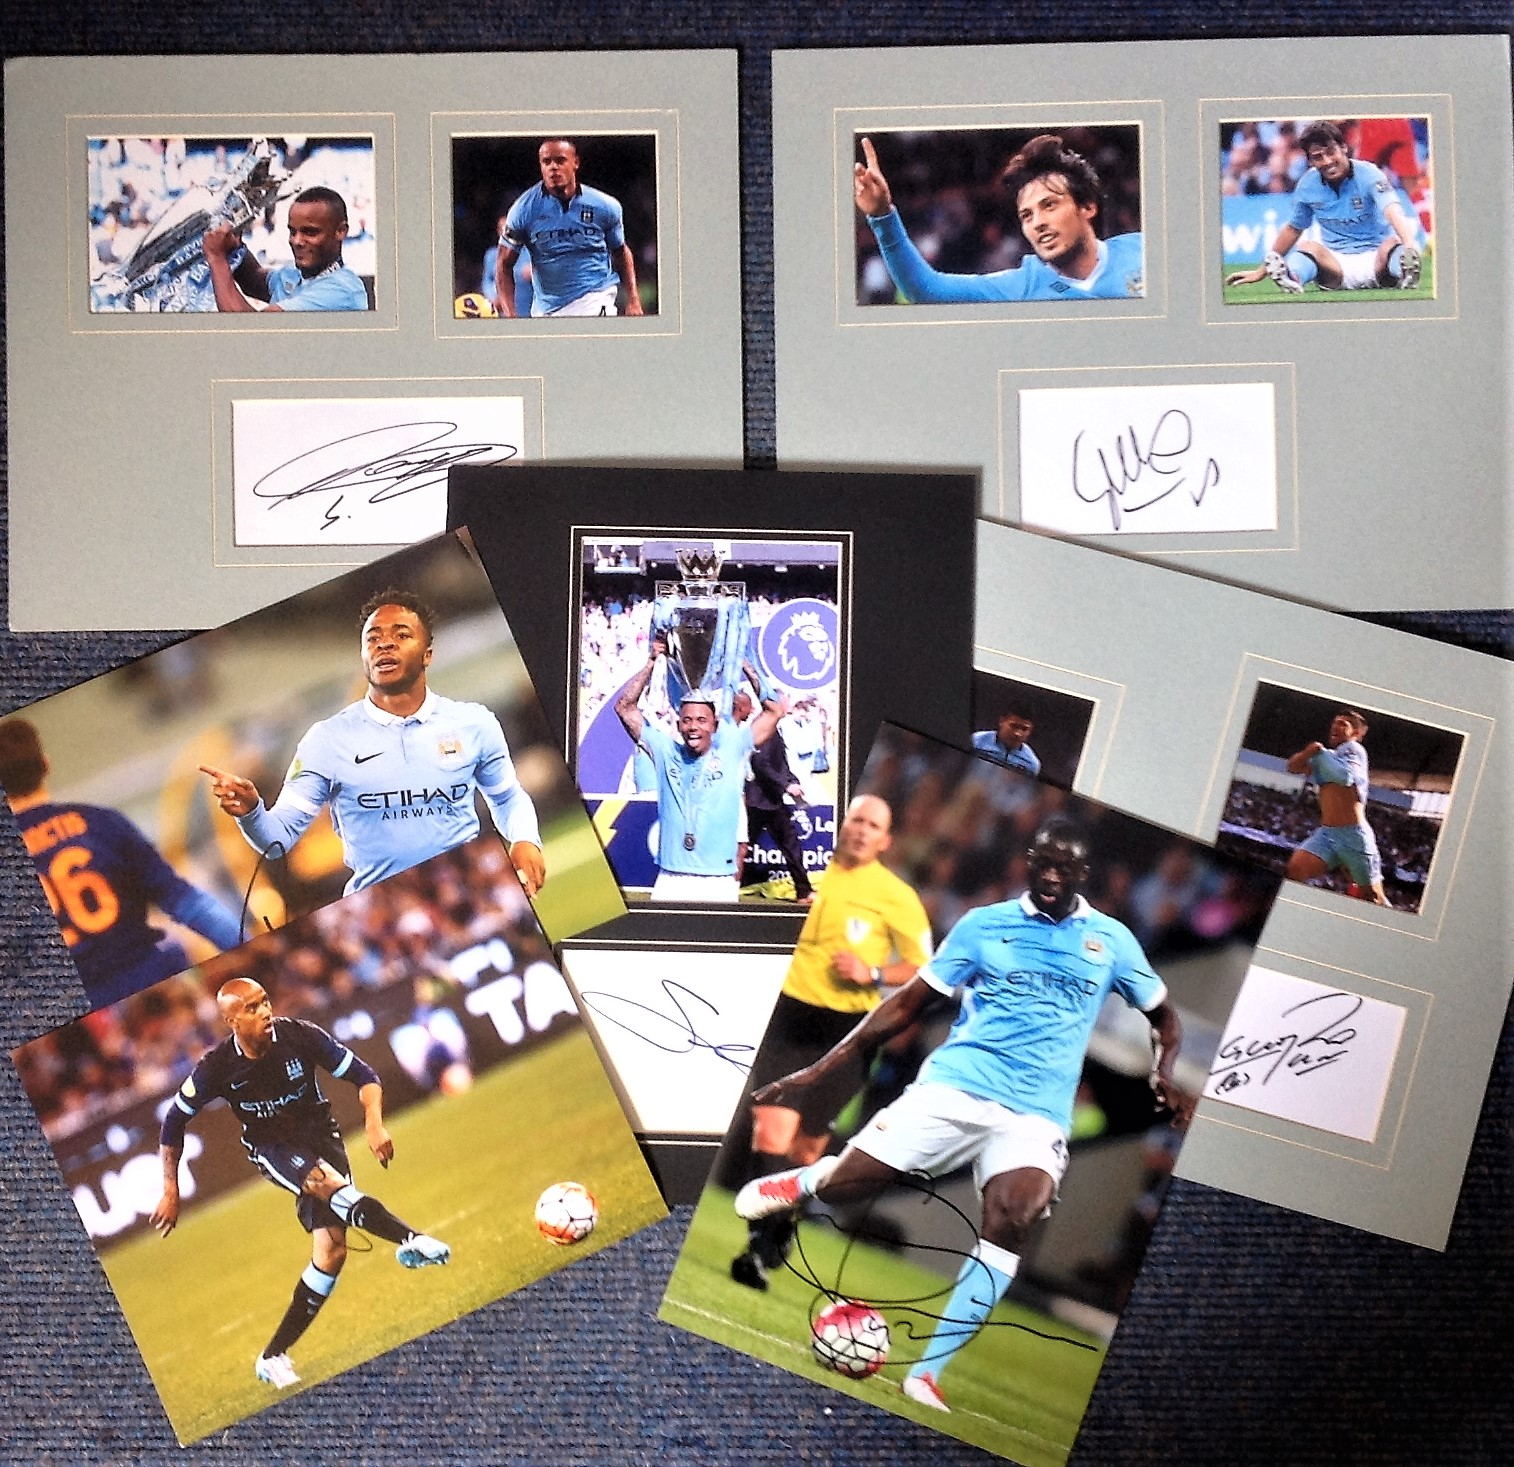 Lot 8 - Football Manchester City collection includes 4 mounted signature pieces and three signed colour